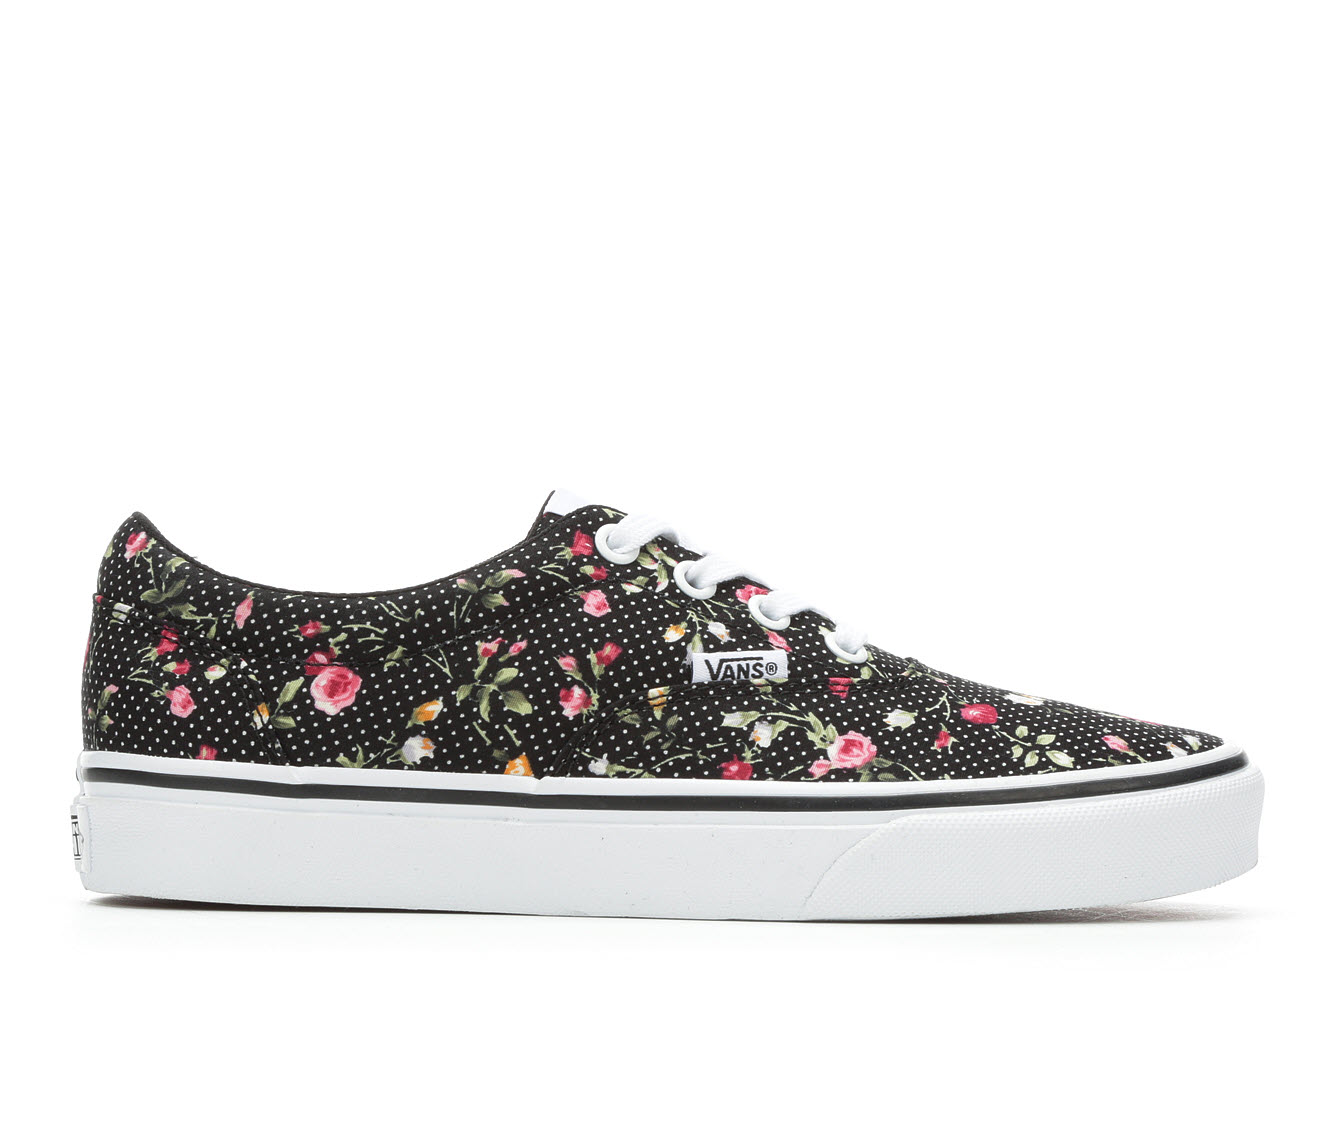 Vans Doheny Floral Dots Women's Athletic Shoe (Black)